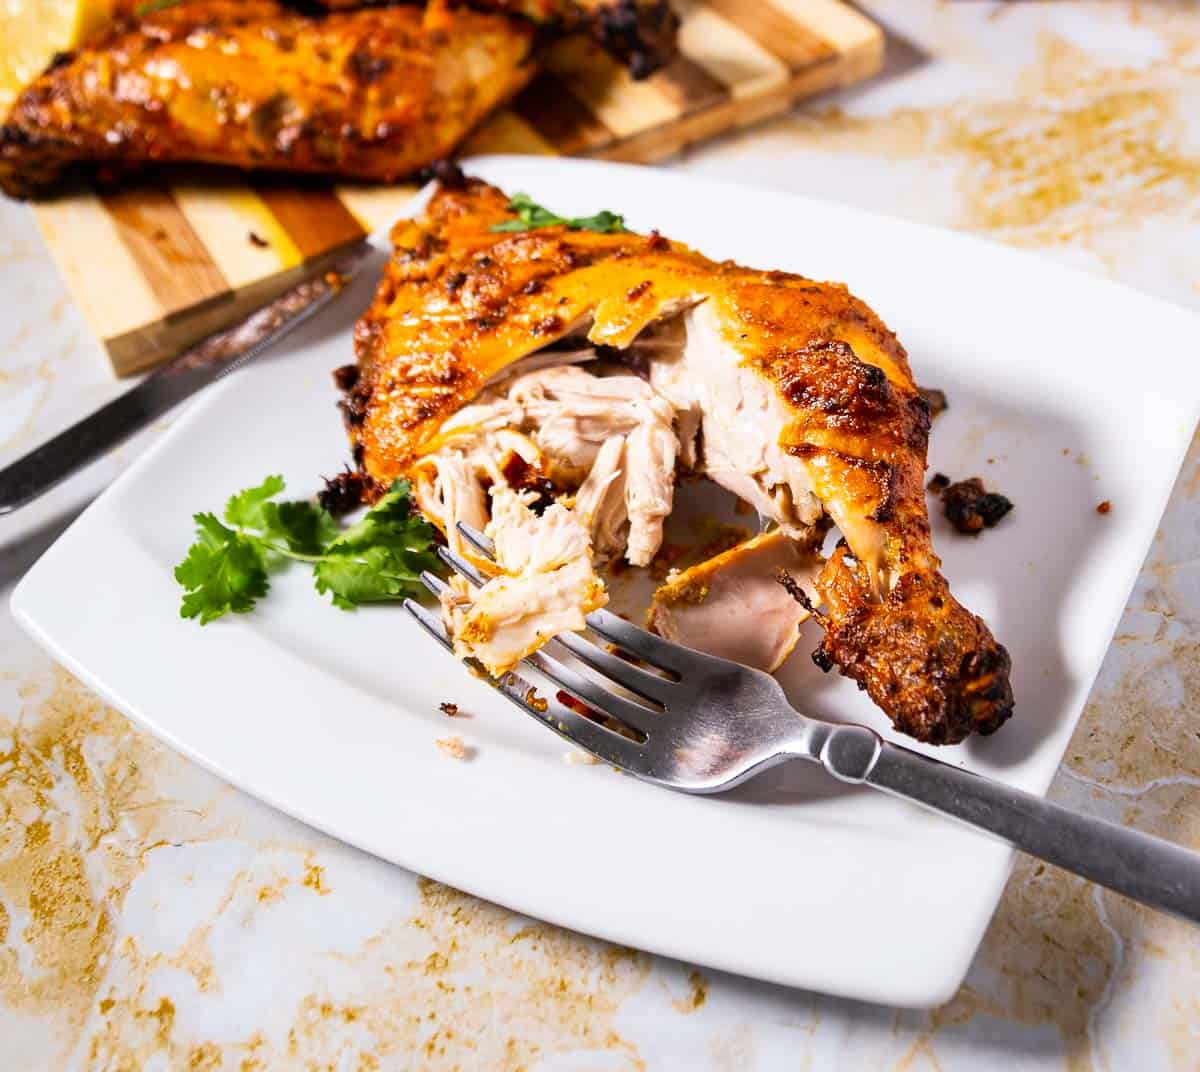 A baked tandoori chicken quarter on a white plate.